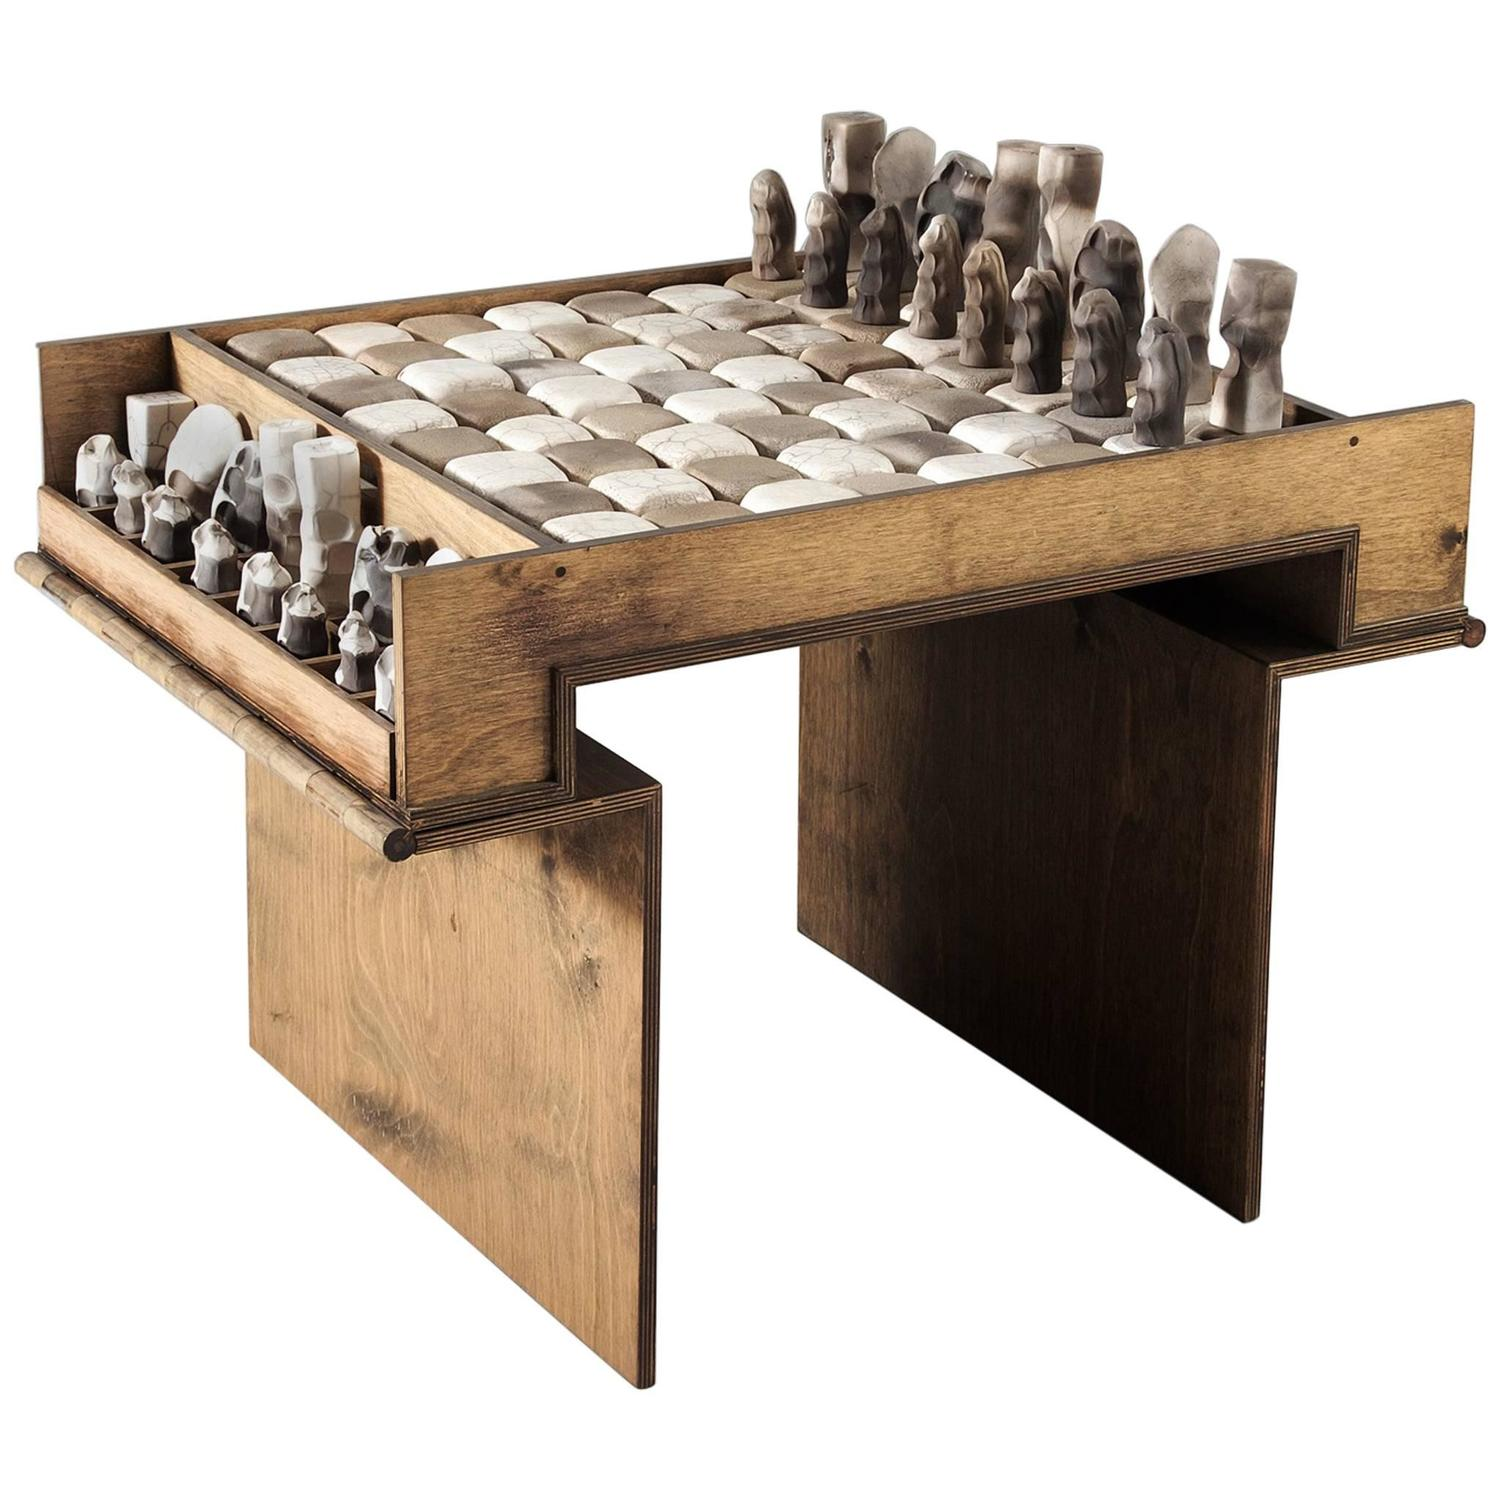 chess table and chairs poker with casters exceptional ceramic set for sale at 1stdibs